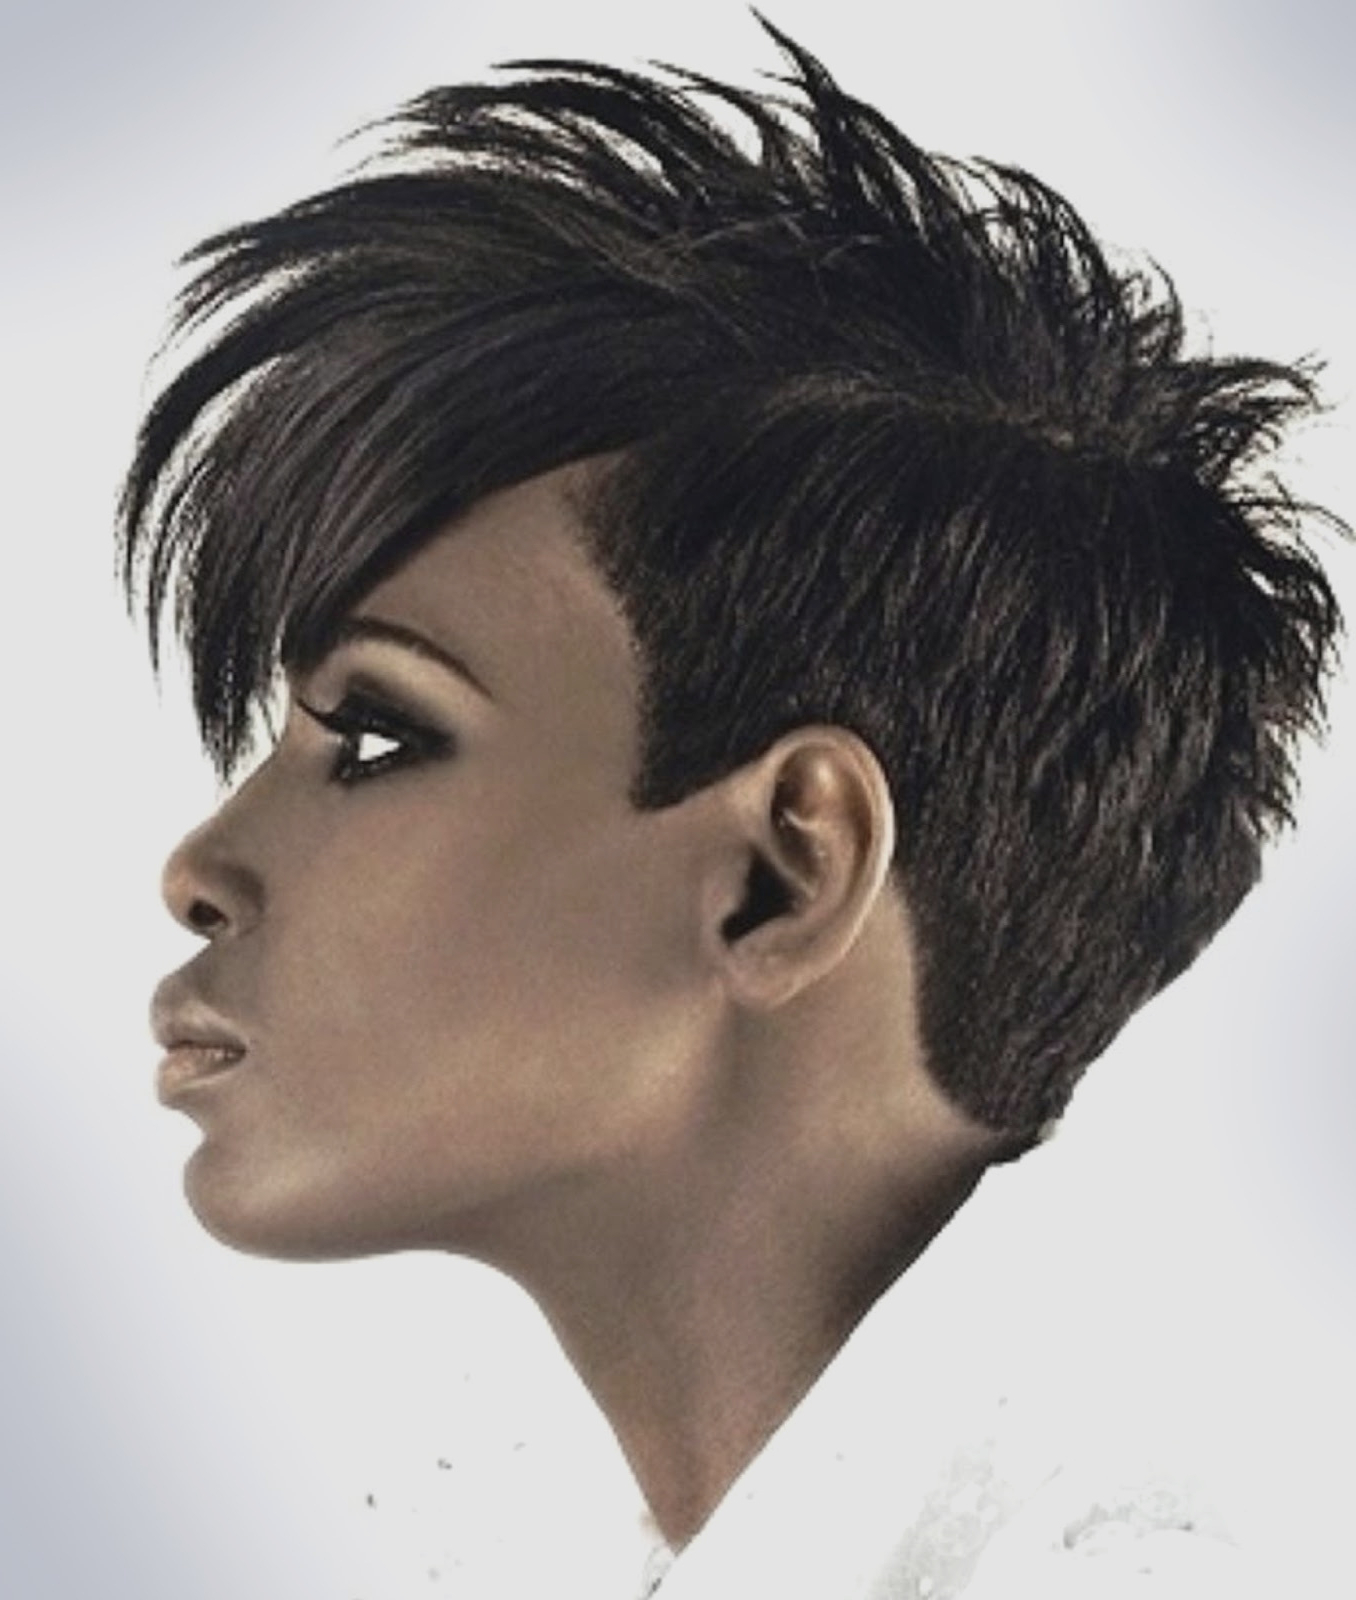 Curly Hairstyles : Curly Weave Mohawk Hairstyles Inspirational Home With Regard To Latest Mohawks Hairstyles With Curls And Design (View 6 of 20)